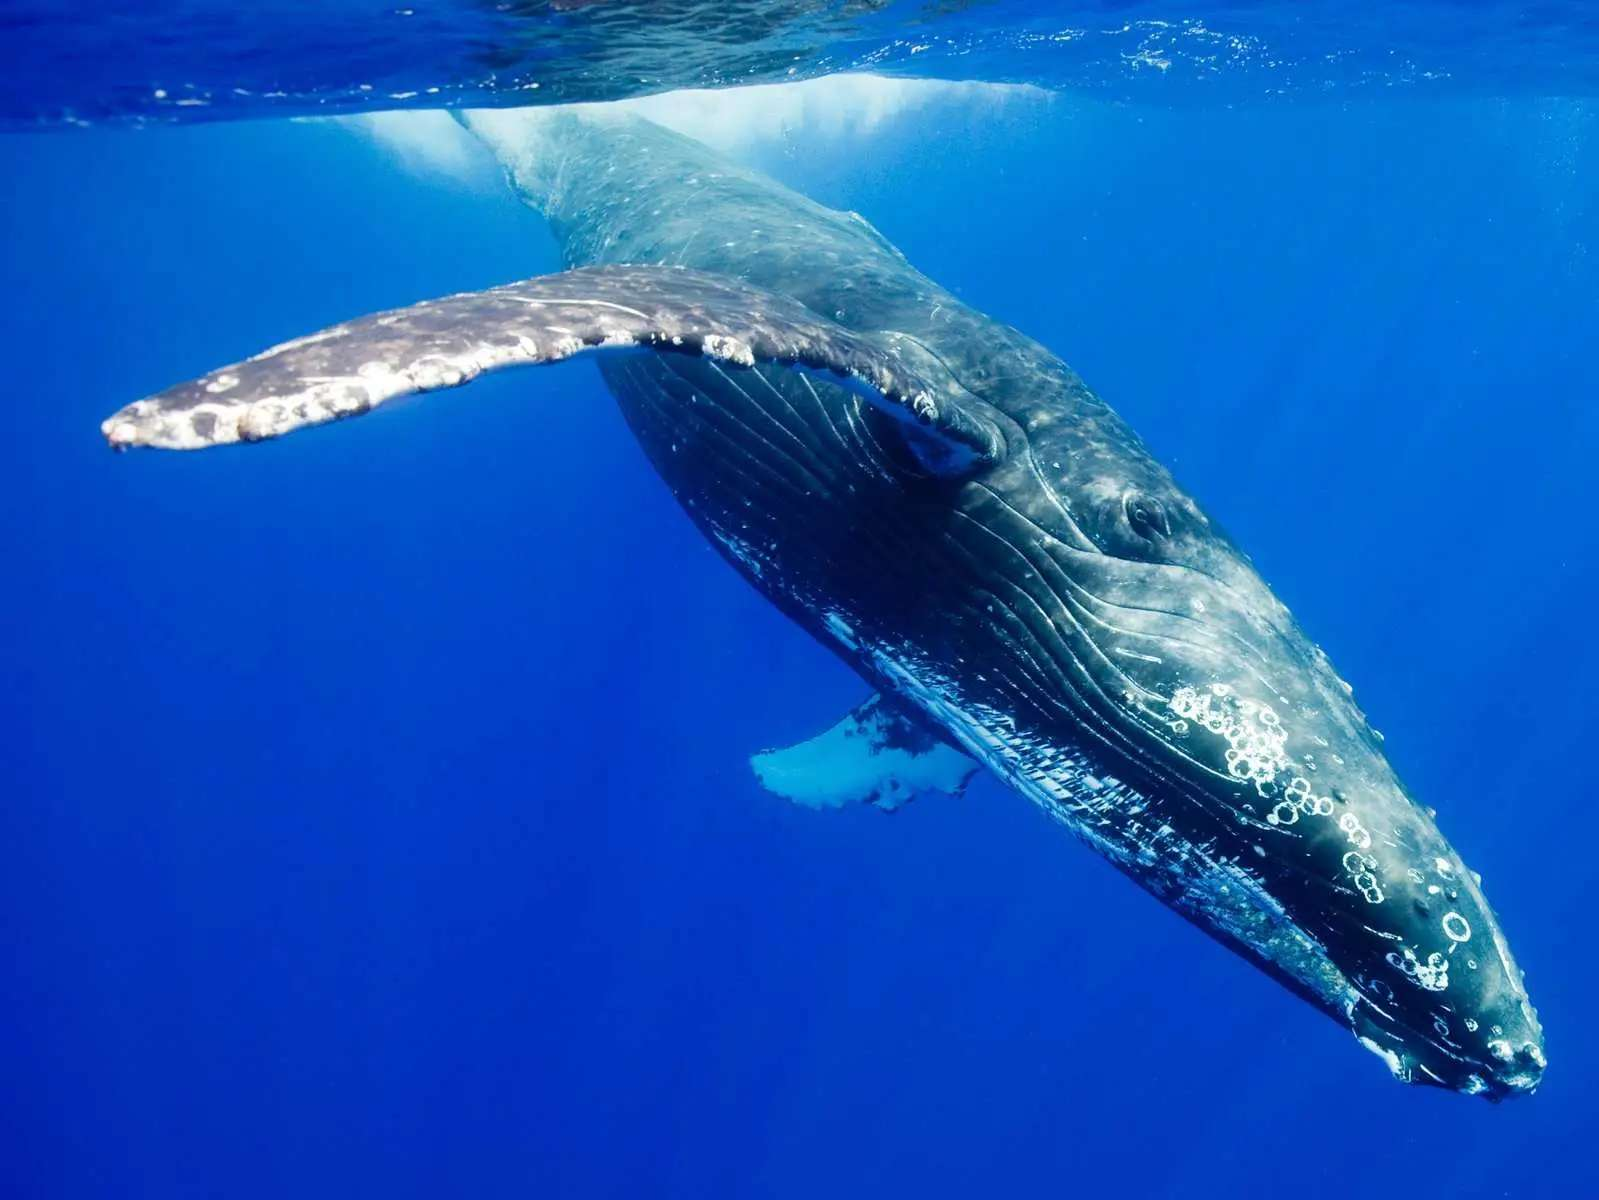 China's coal reserves weigh as much as 575 million blue whales.